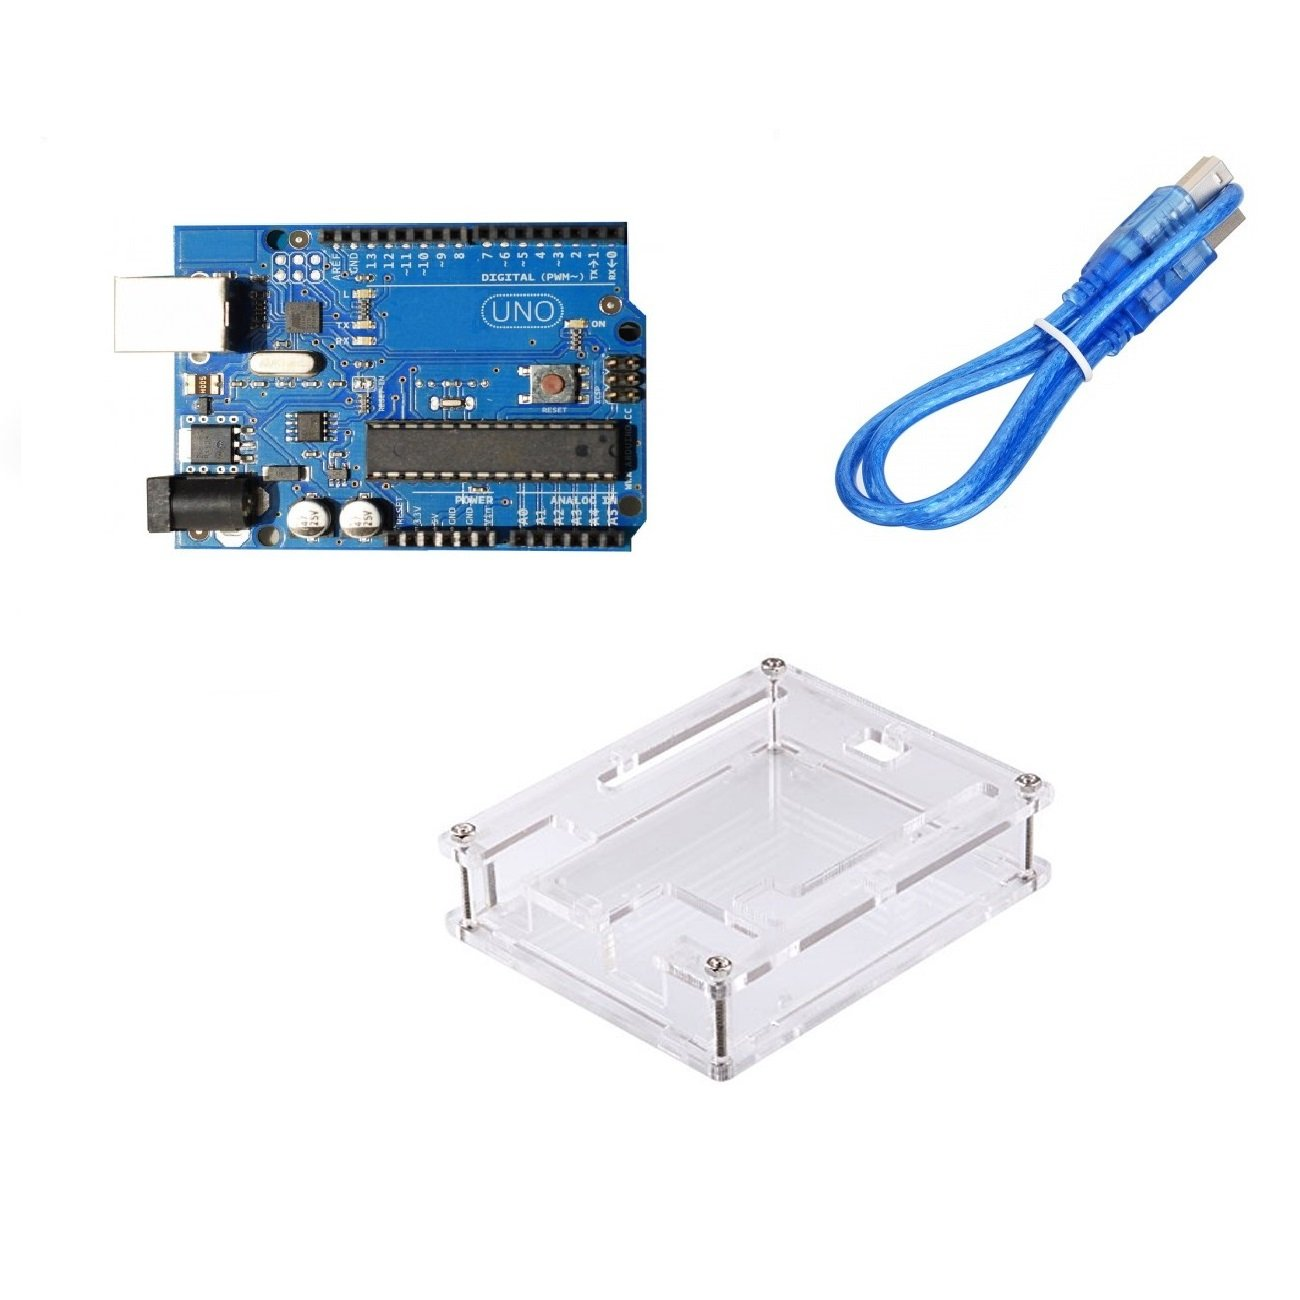 Uno R3 compatible with Arduino + Cable + Transparent acrylic case for Uno R3